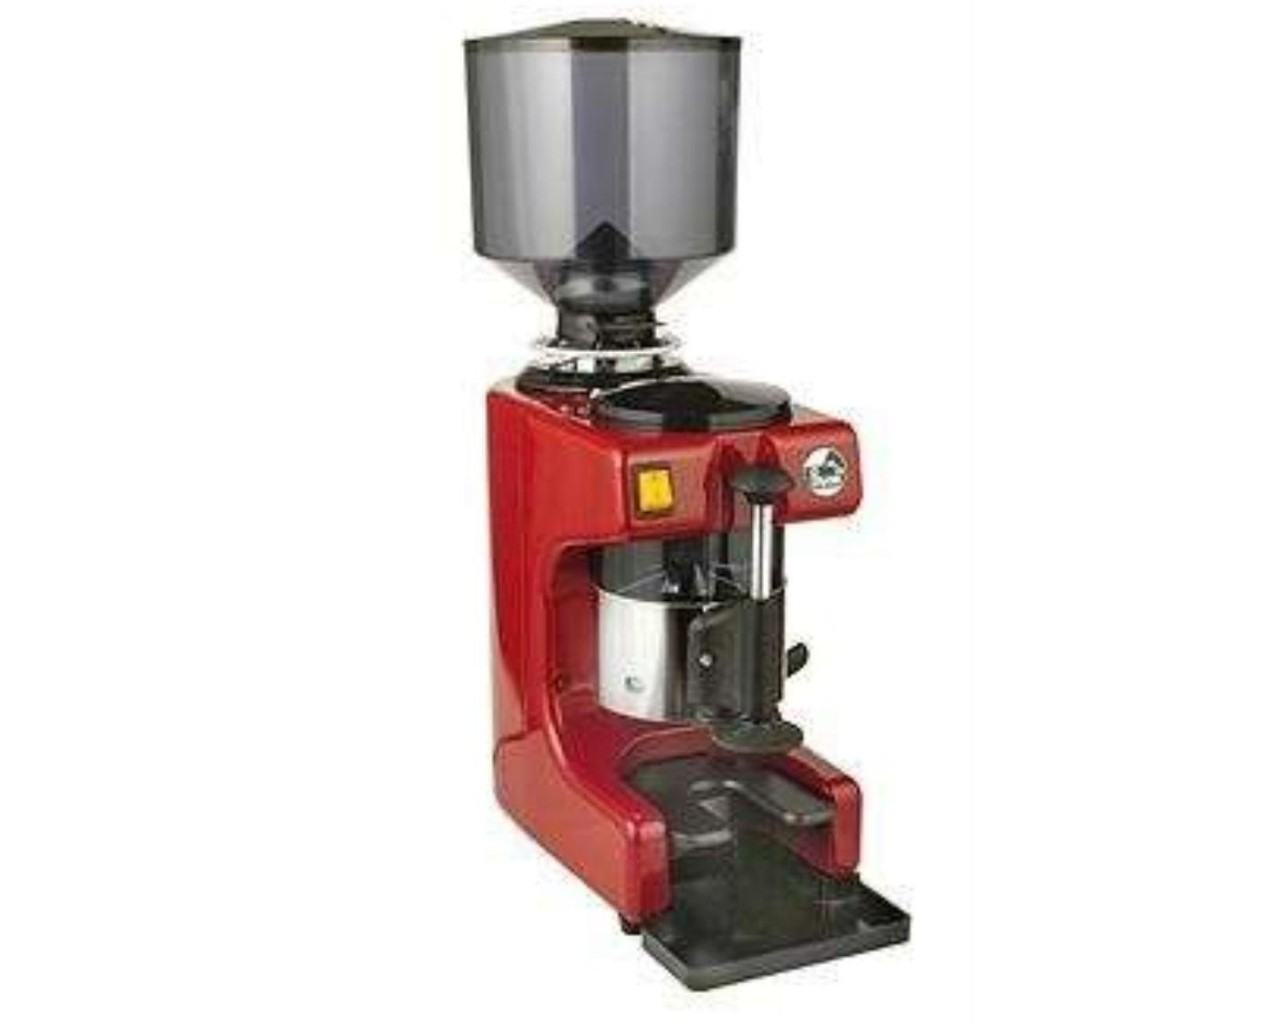 La Pavoni Commercial Coffee Grinder – 2